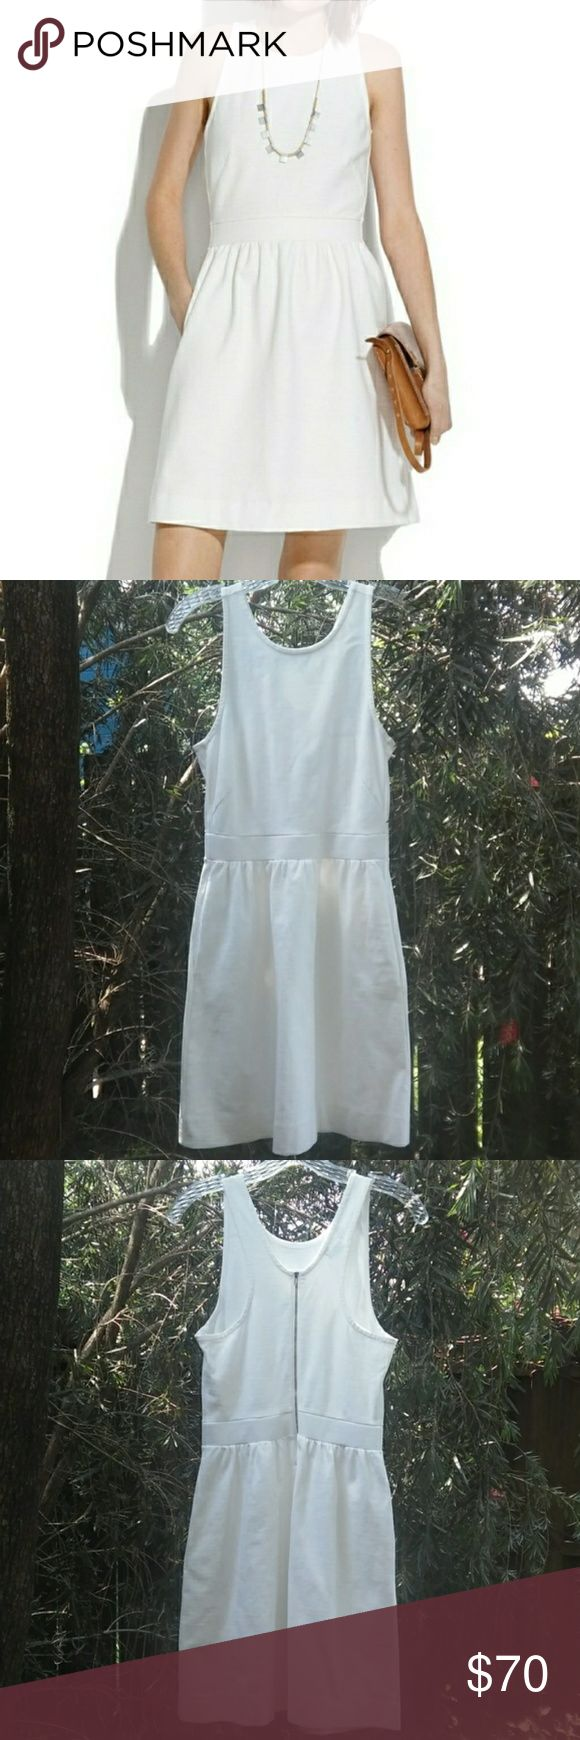 "Madewell White Dress Madewell White Dress. It is *Sold out* on website. Pristine pre-owned condition, like new. Super cute side pockets with a zipper back. It will come to you already dry-cleaned and ready to wear. Dry clean tag attached, I saved you $7.00 already! I took the picture of the manufacturer tag right before it was dry cleaned. A simple but sexy racerback style with an exposed zip. Supercool, sporty and easy. True to size, waisted. Falls 35"" from shoulder. Cotton with a hint of…"